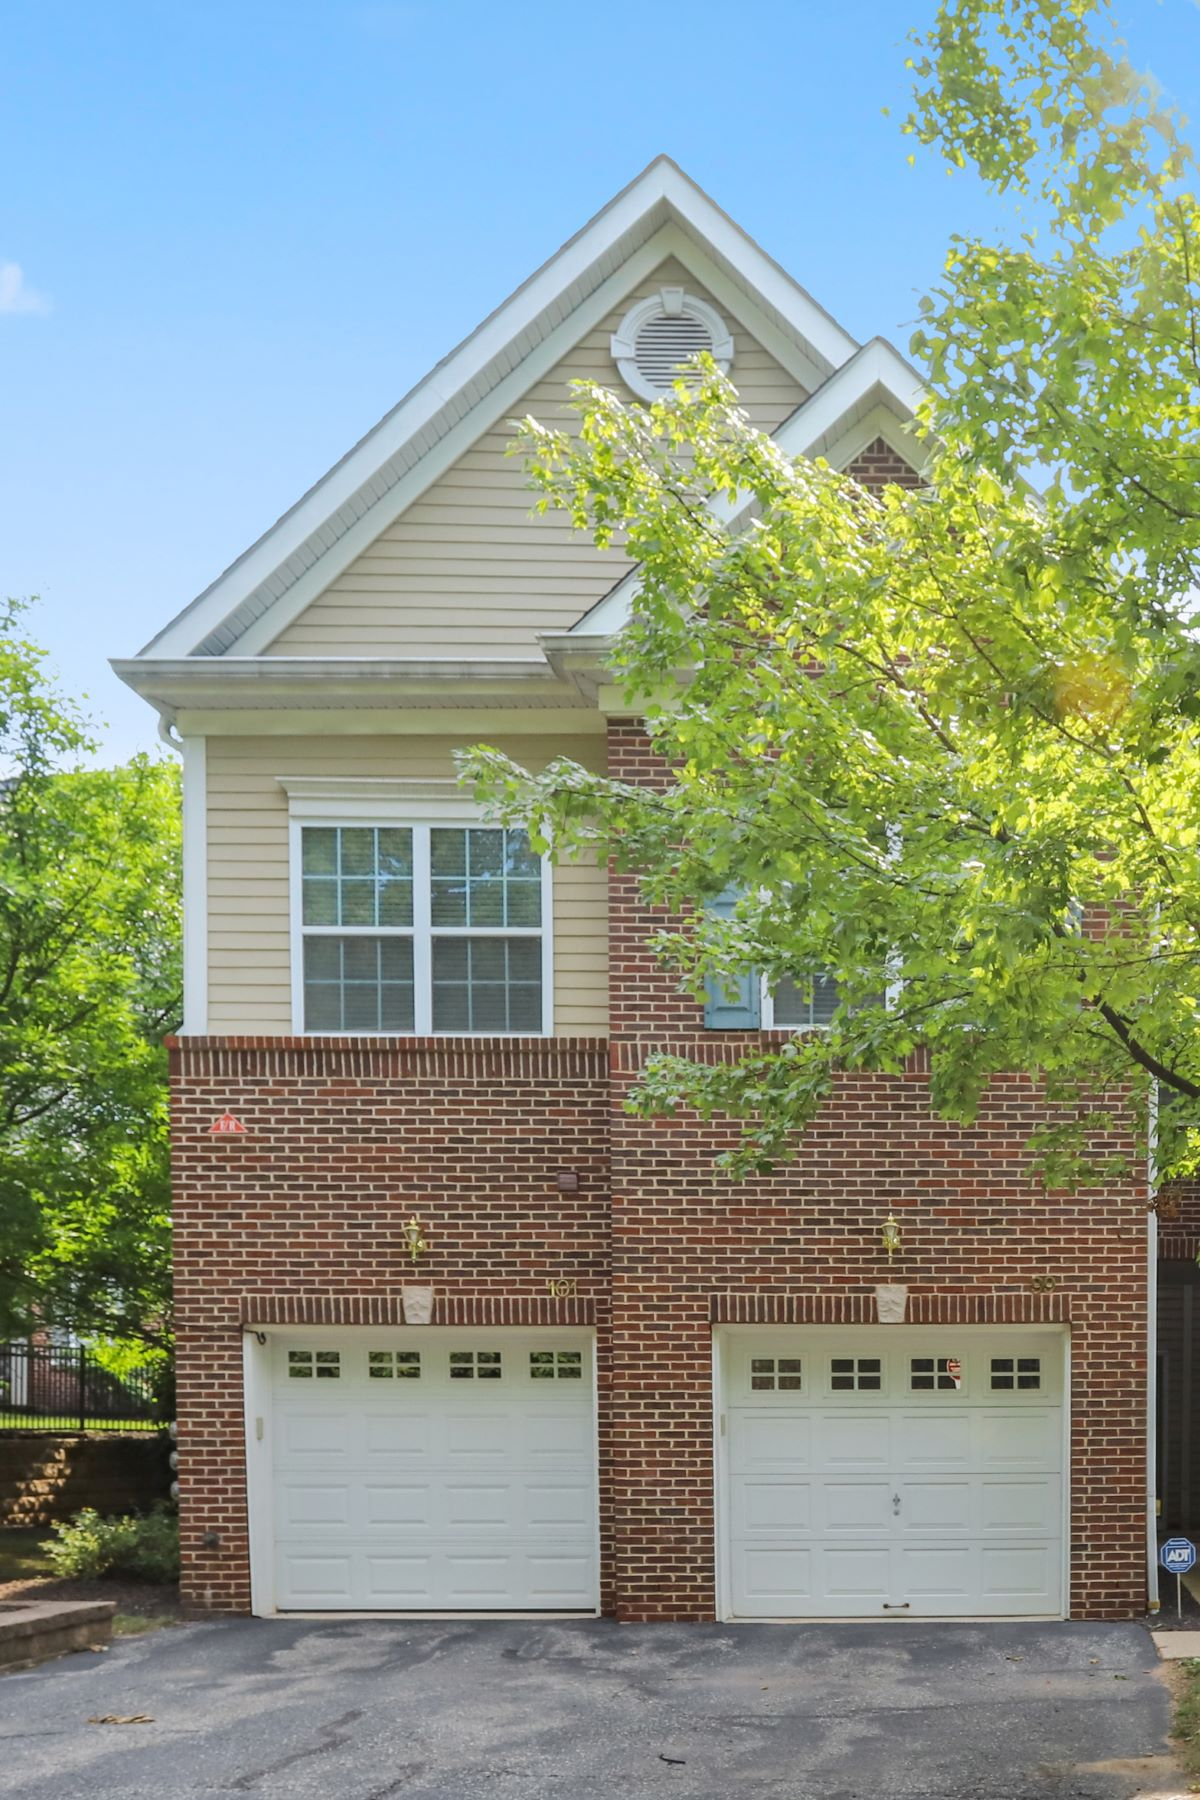 townhouses for Active at In Town Location - Move in Ready 99 Taft Lane Morristown, New Jersey 07960 United States